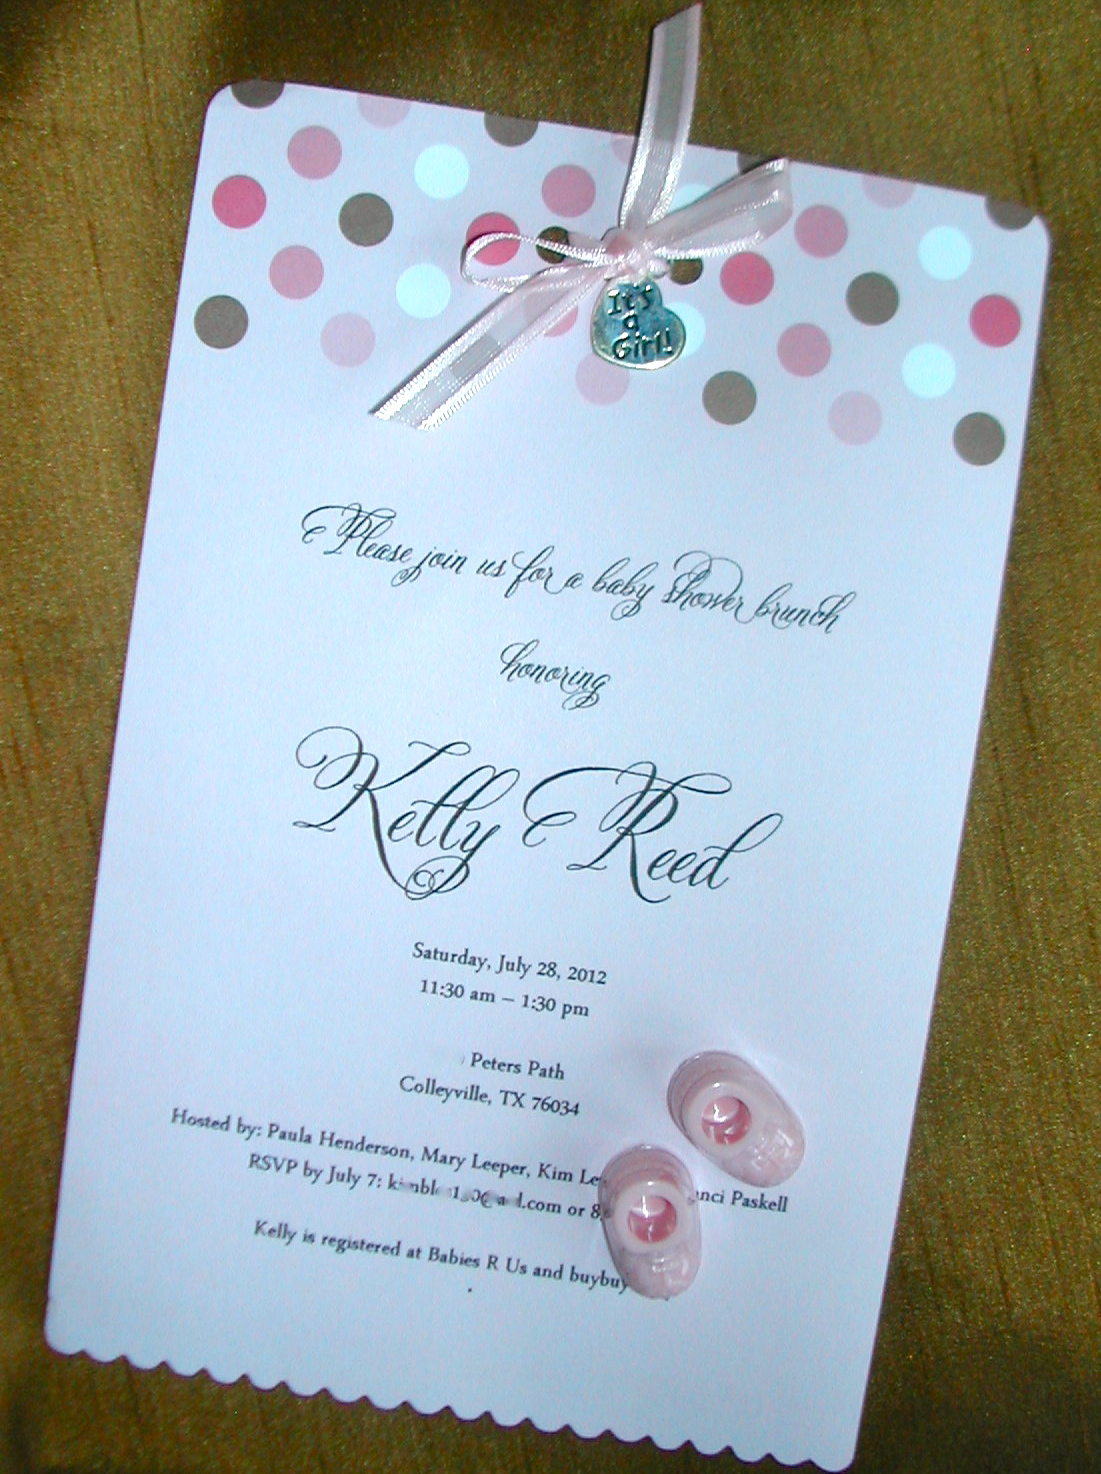 Fancy Baby Shower Invitations is the best ideas you have to choose for invitation example